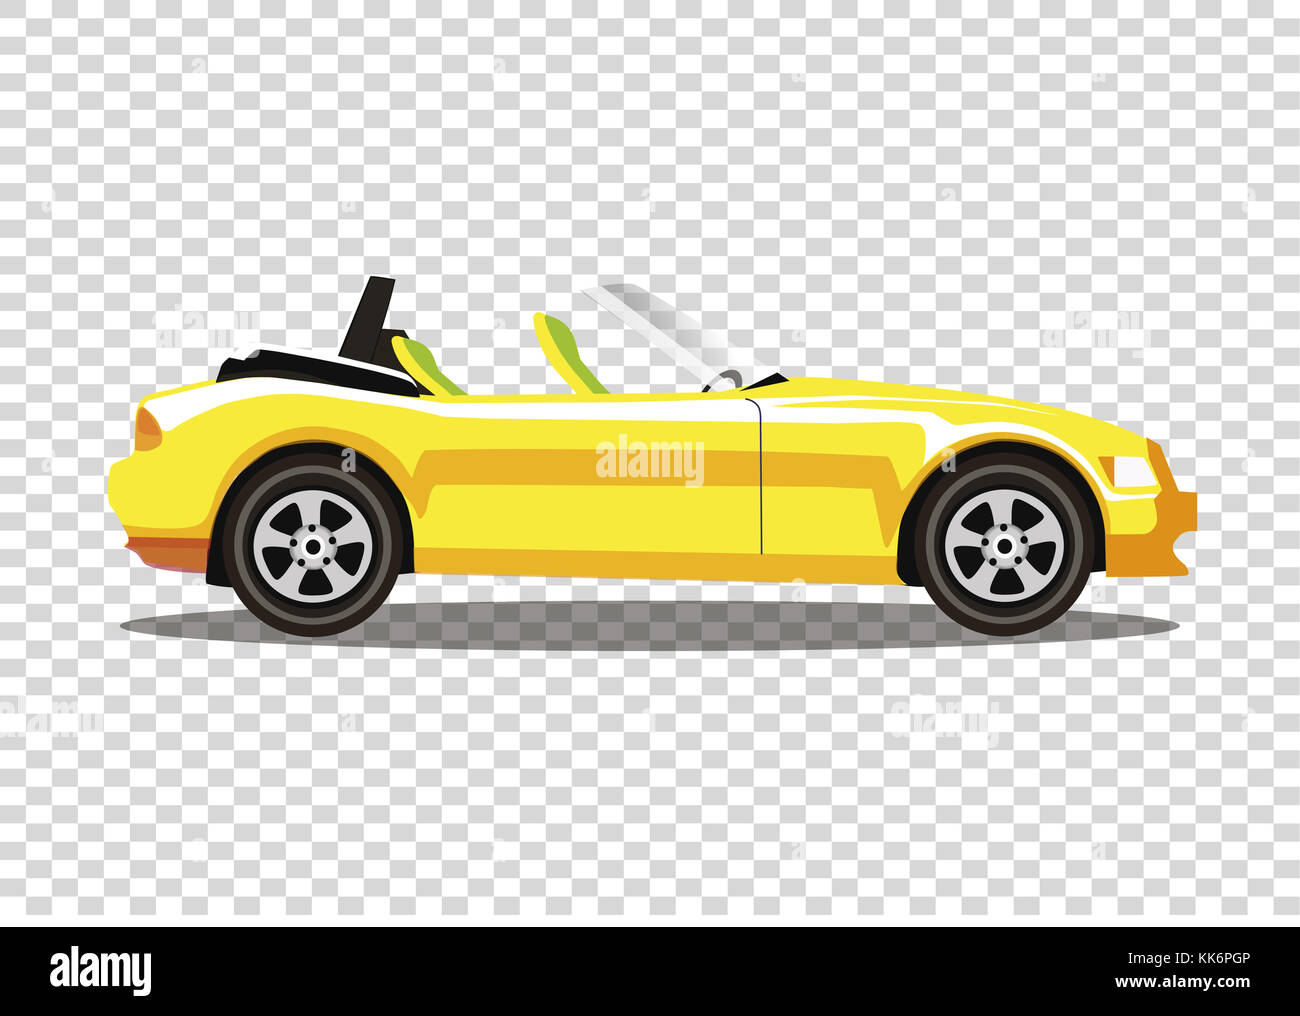 Yellow Modern Cartoon Colored Cabriolet Car Isolated On